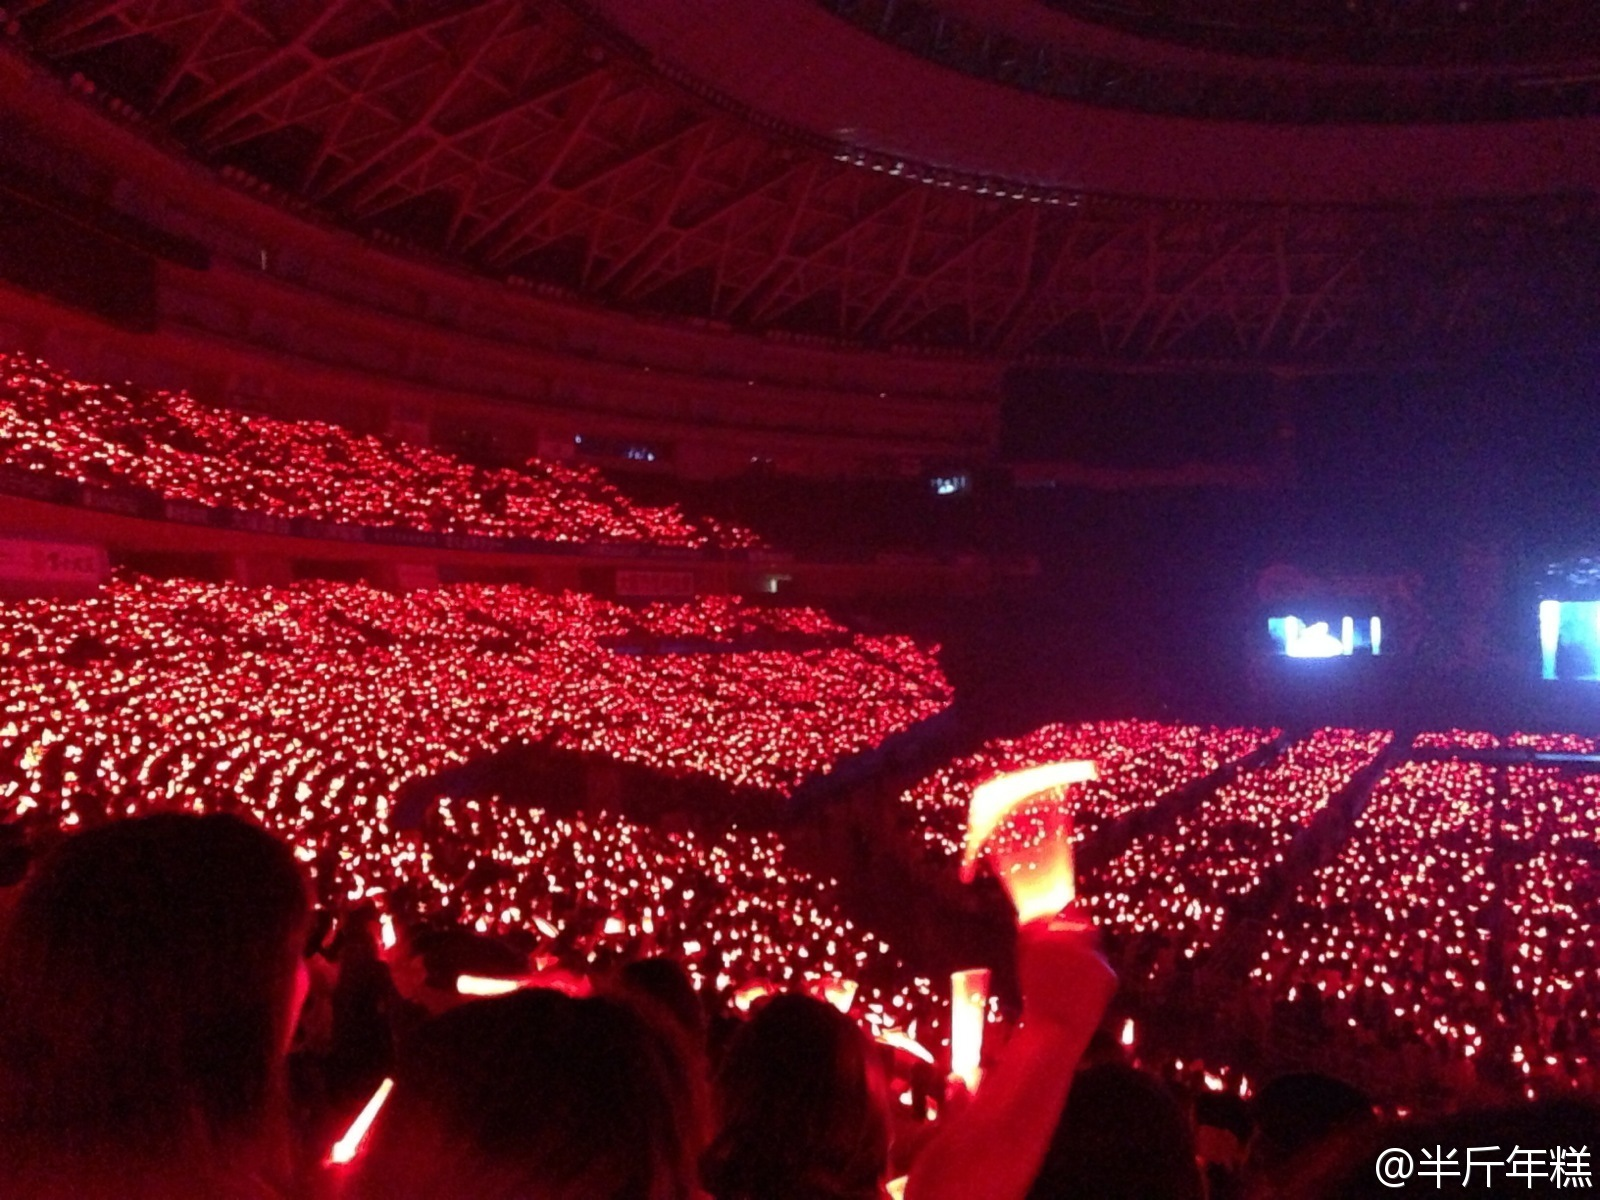 130605 Time Tour大阪京セラドーム1回目 RED OCEAN2